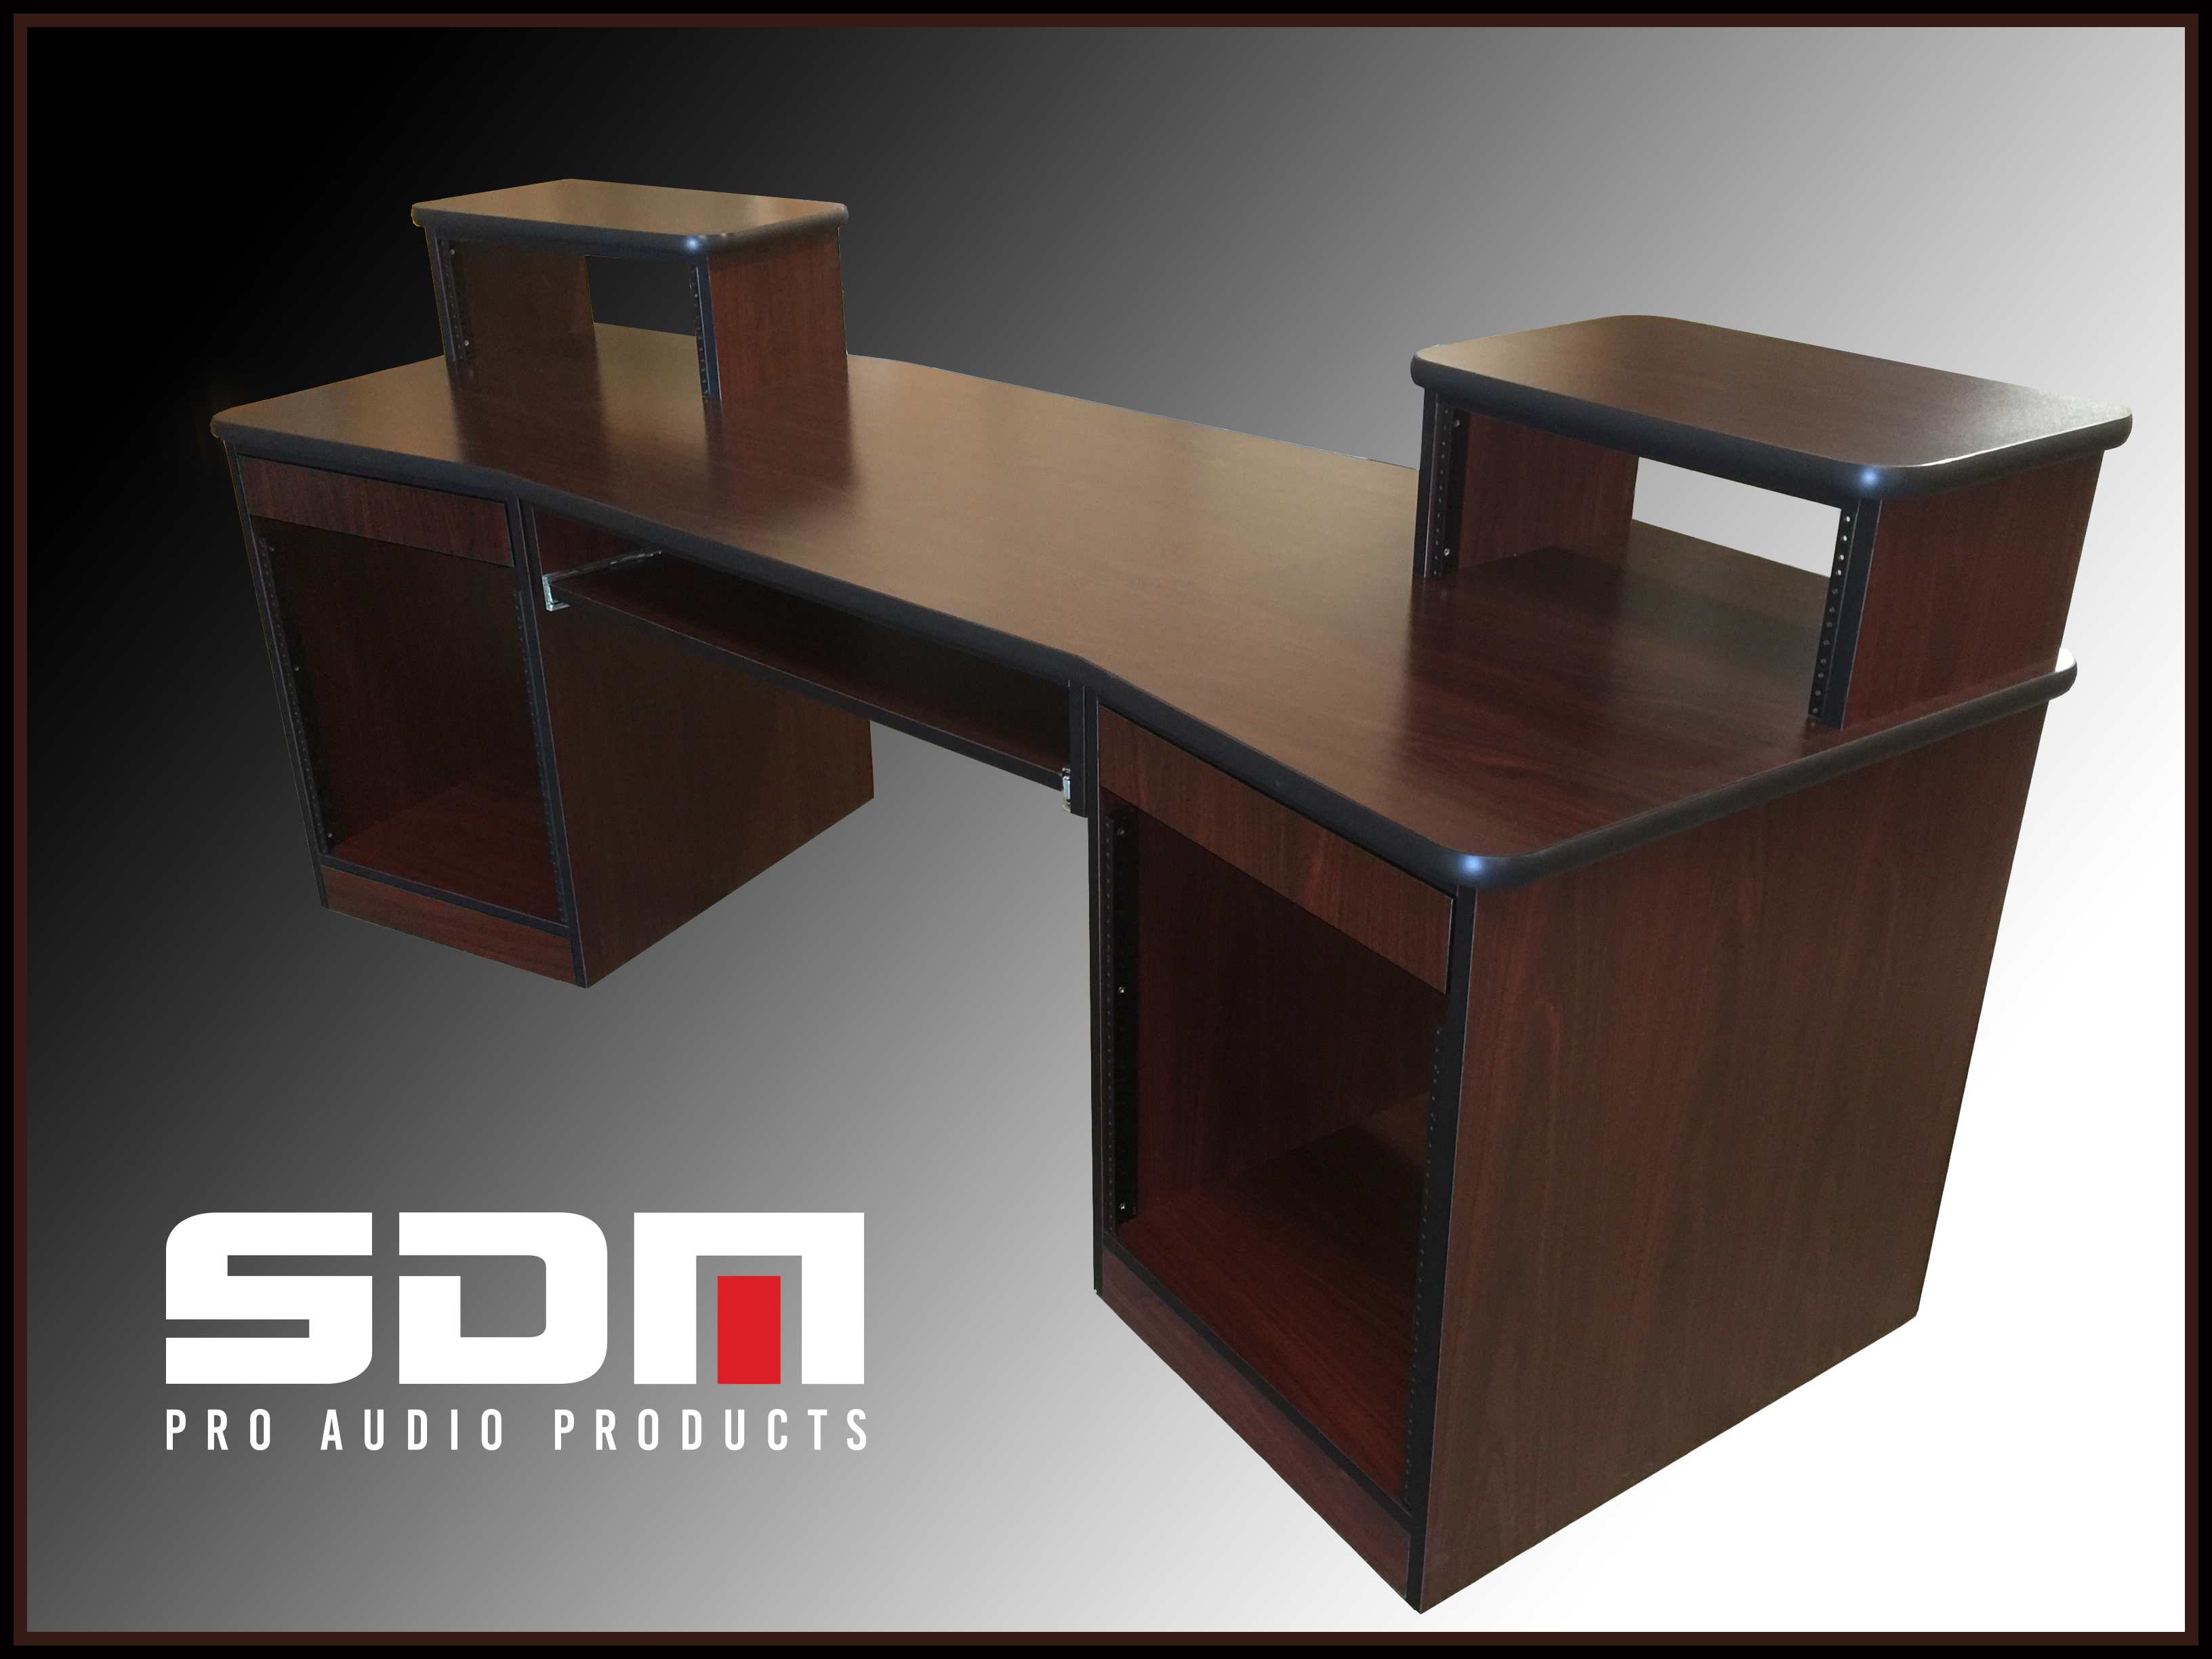 PRODUCER DESK - African Walnut Cabinetry- Black Edge - Commercial Grade Laminate Top